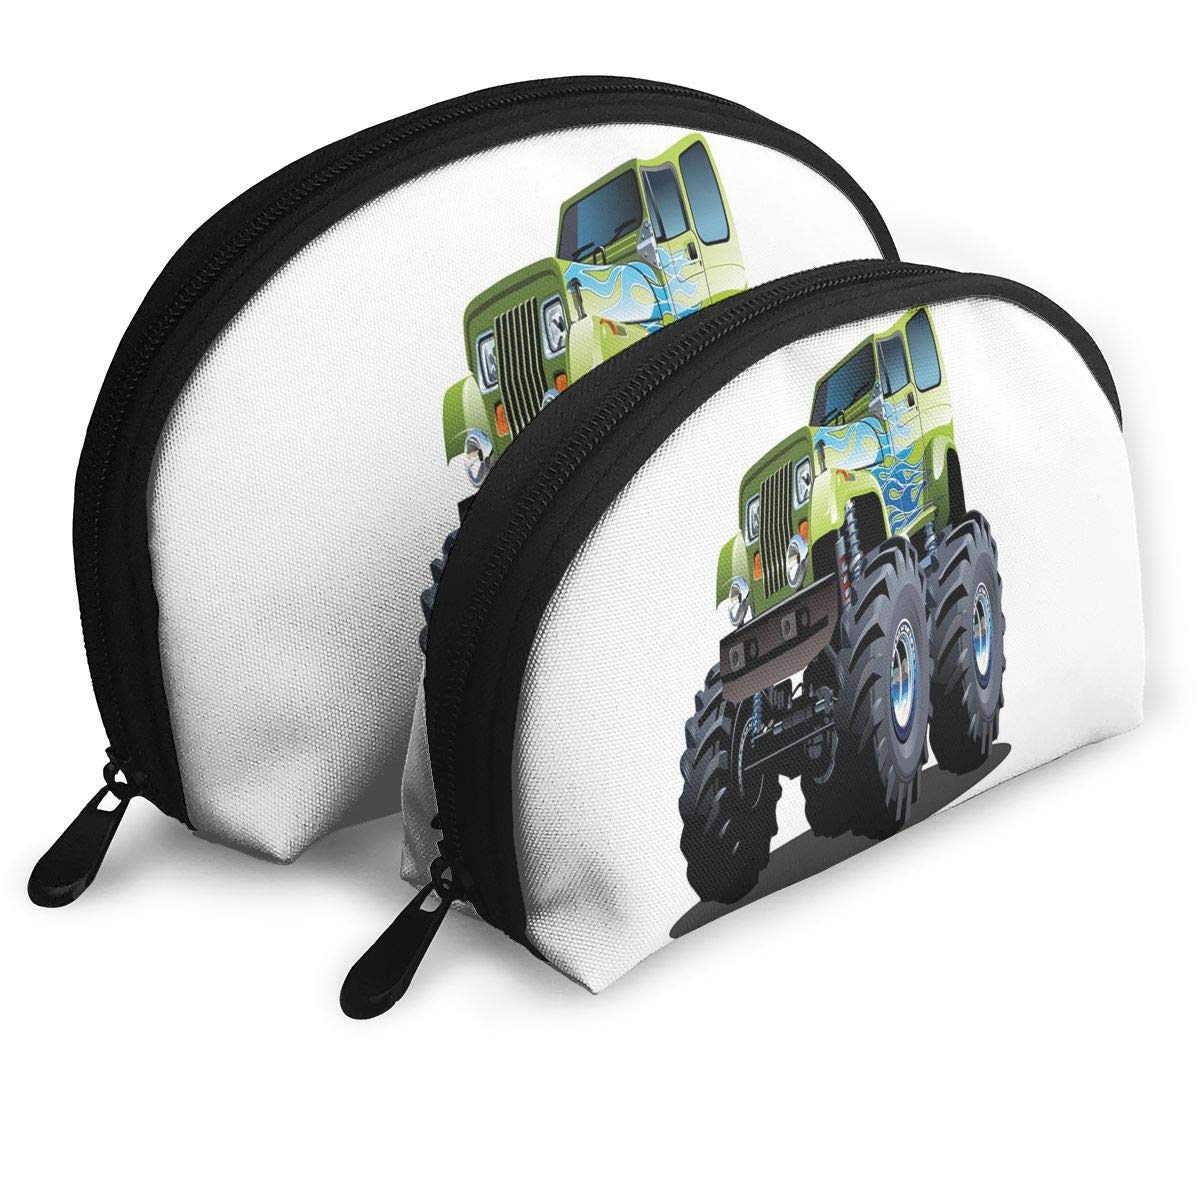 Shell Shape Makeup Bag Set Portable Purse Travel Cosmetic Pouch,Cool Monster Truck Boyhood Dreams Giant Wheels Off Road Vehicle,Women Toiletry Clutch